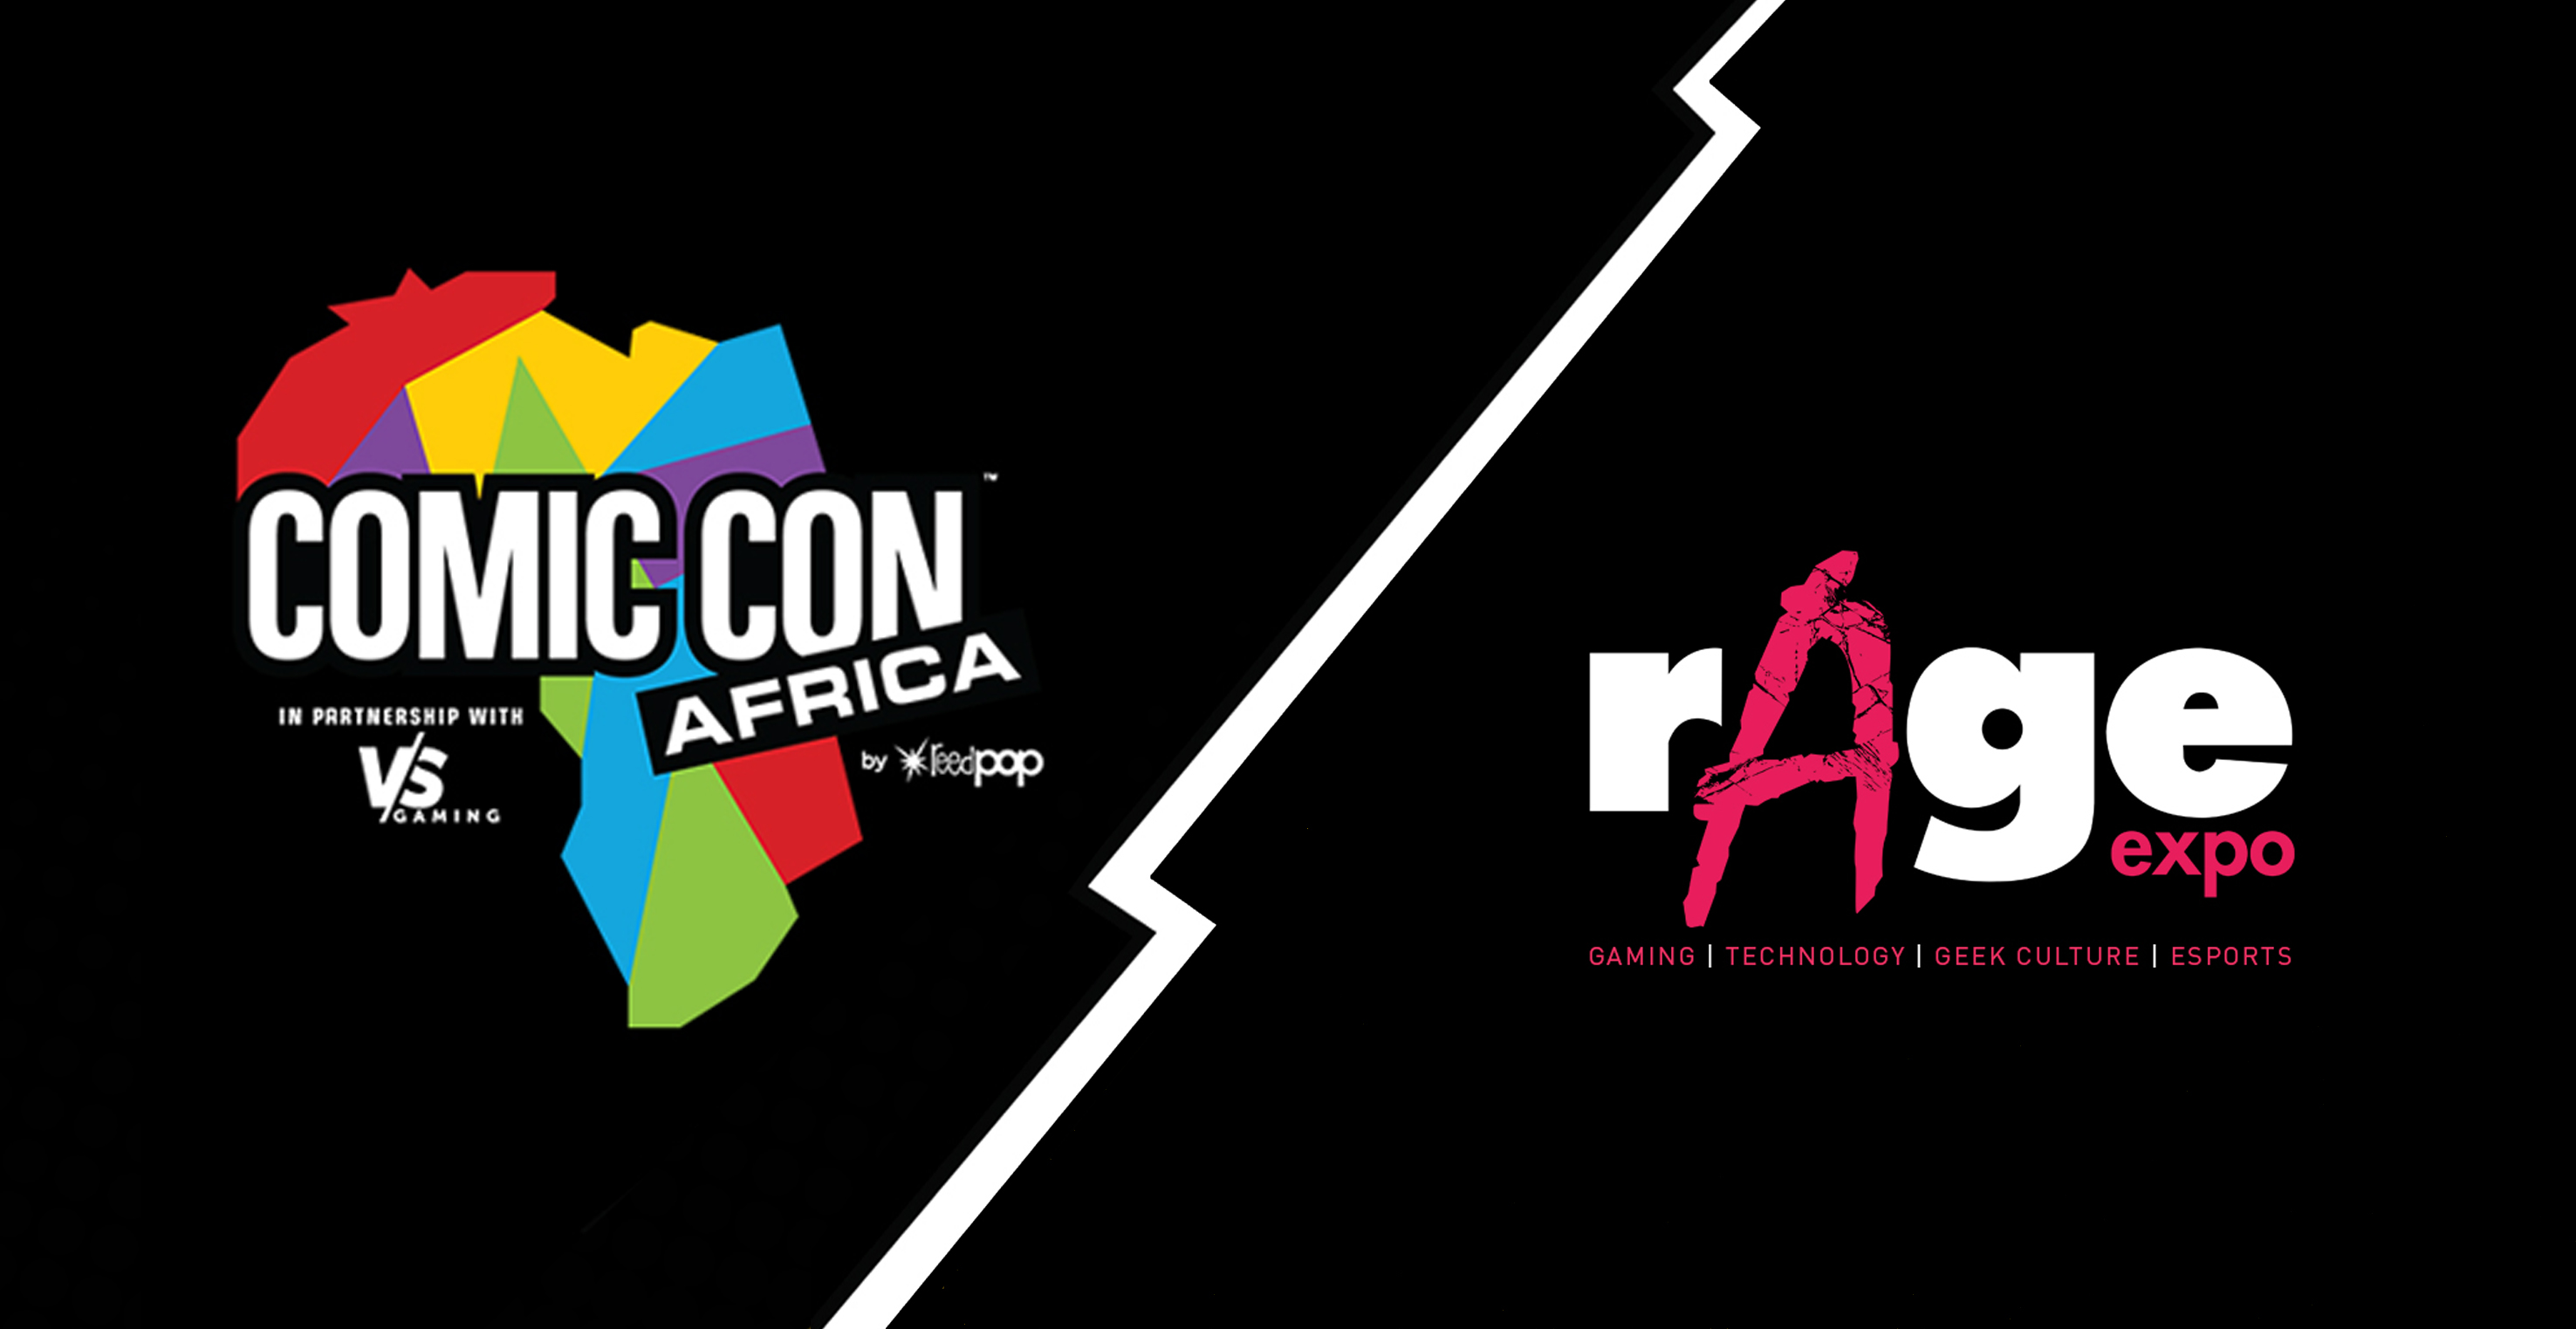 Comic Con Africa vs rAge